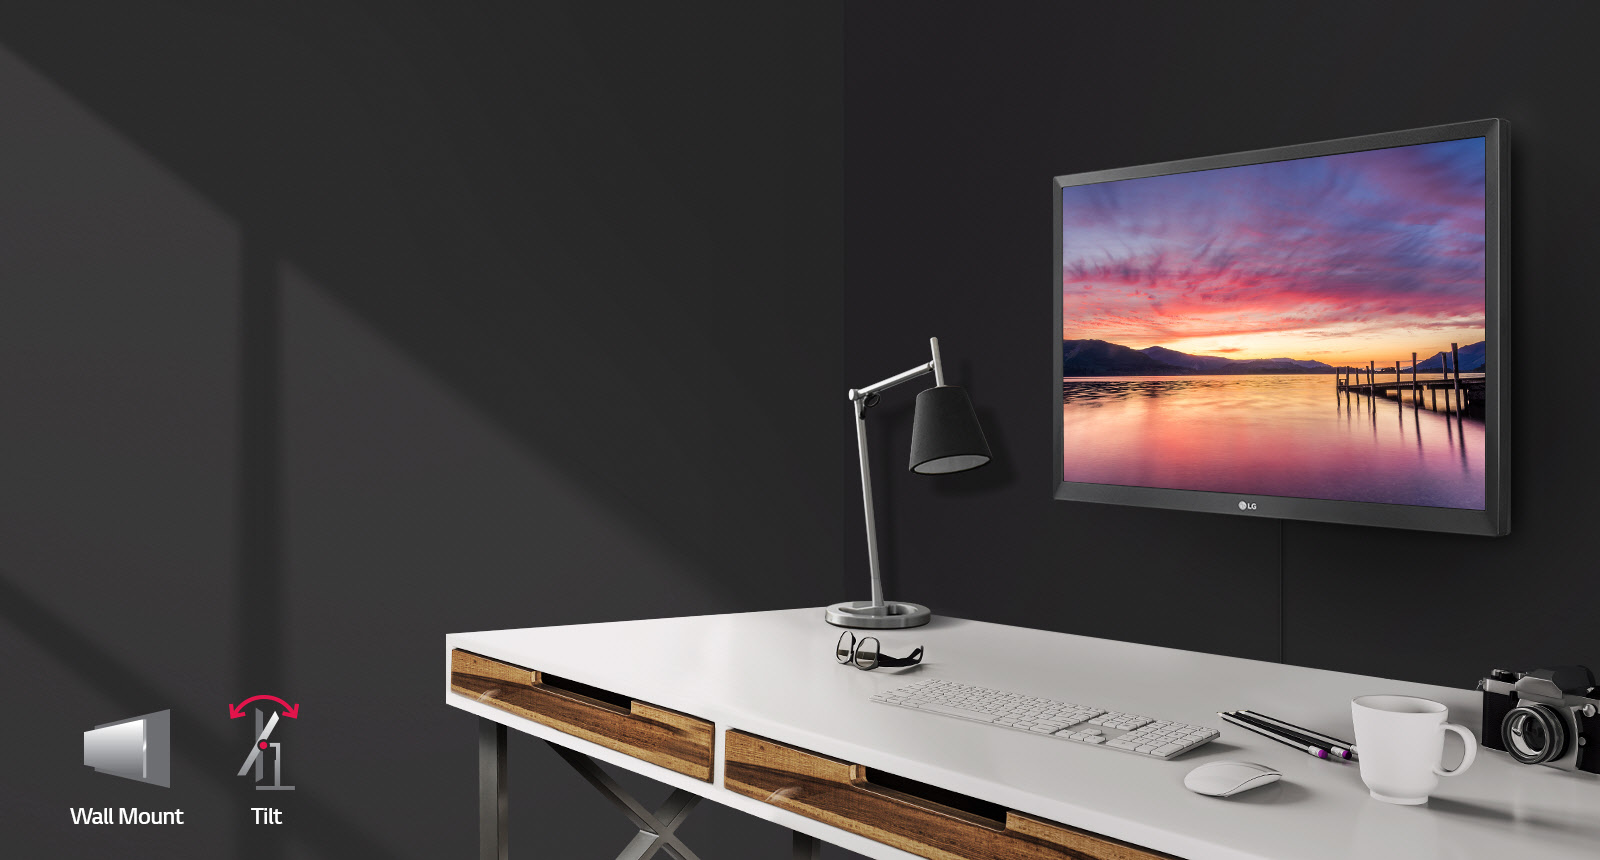 The LG 22MK400H-B is hung on the wall, with a desk lamp and keyboard on the table to make your work easier